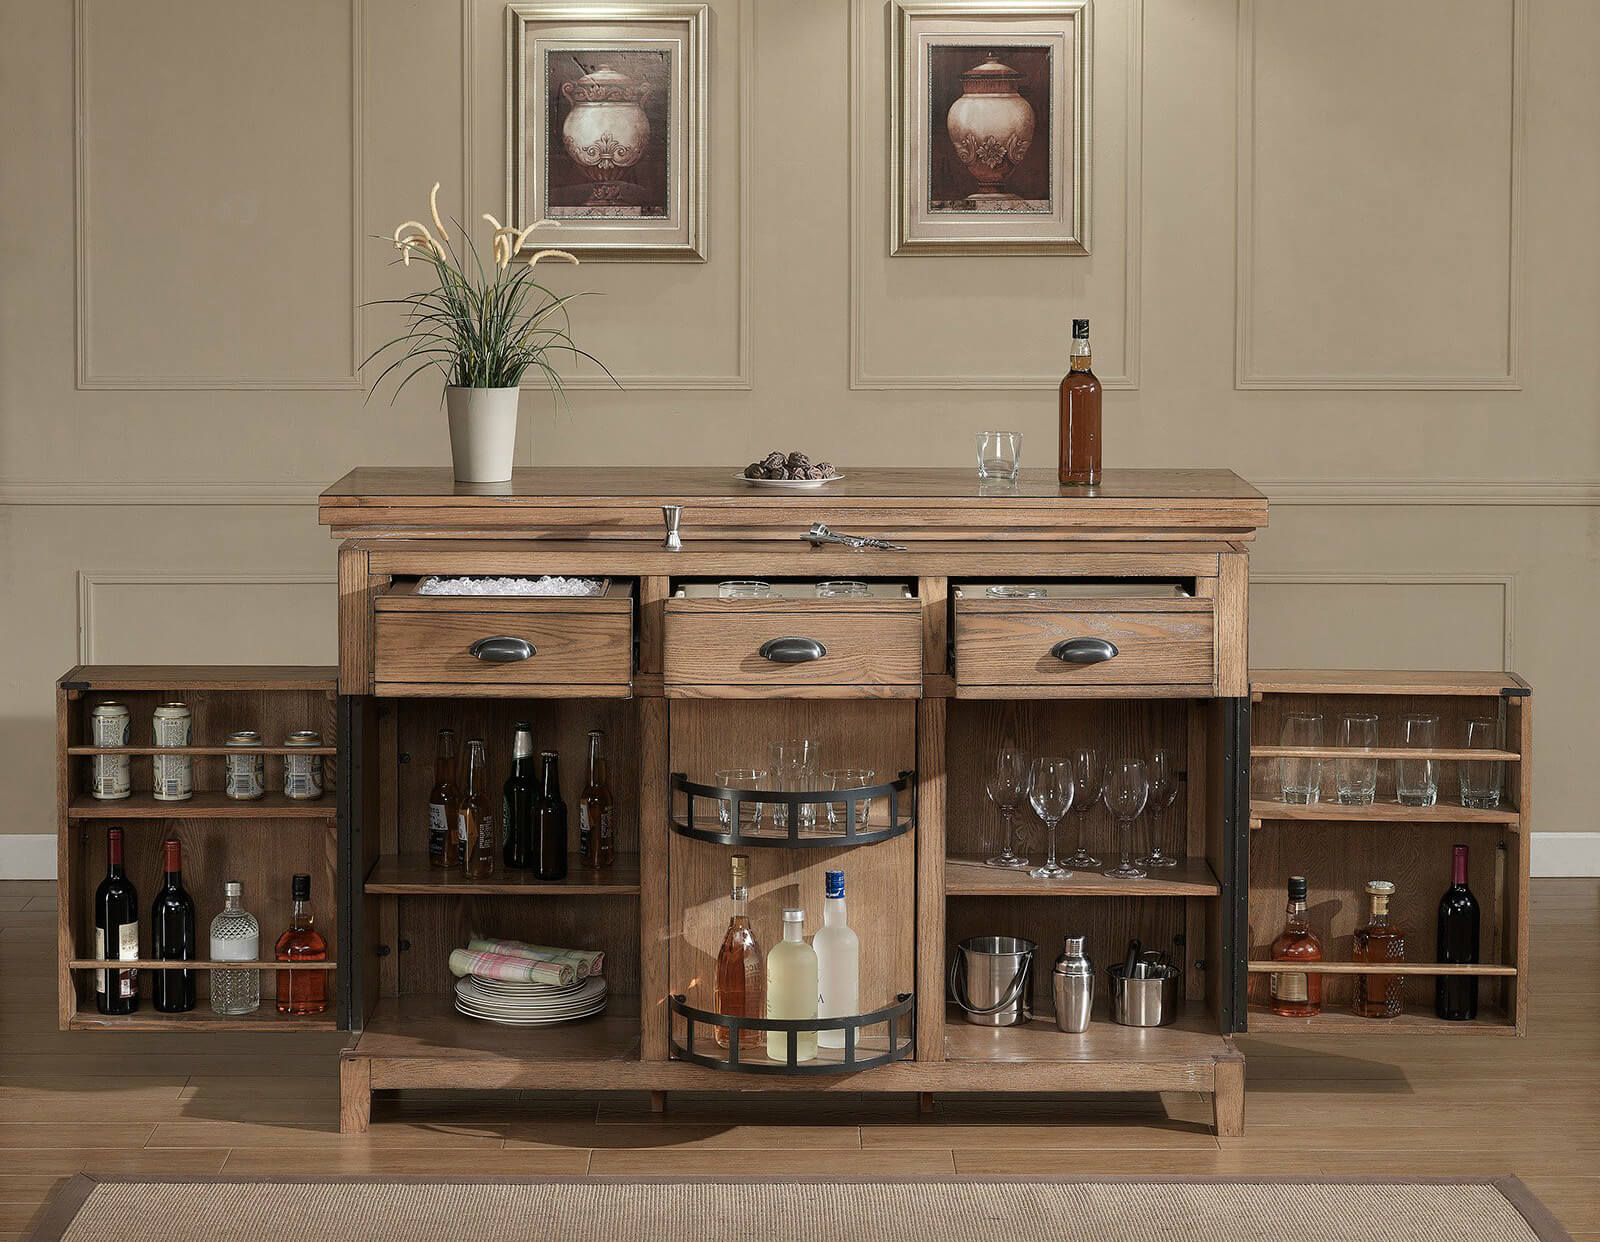 small home bar furniture. As You Can See, The Amount Of Storage In This Rustic Home Bar Cabinet Unit Small Furniture E